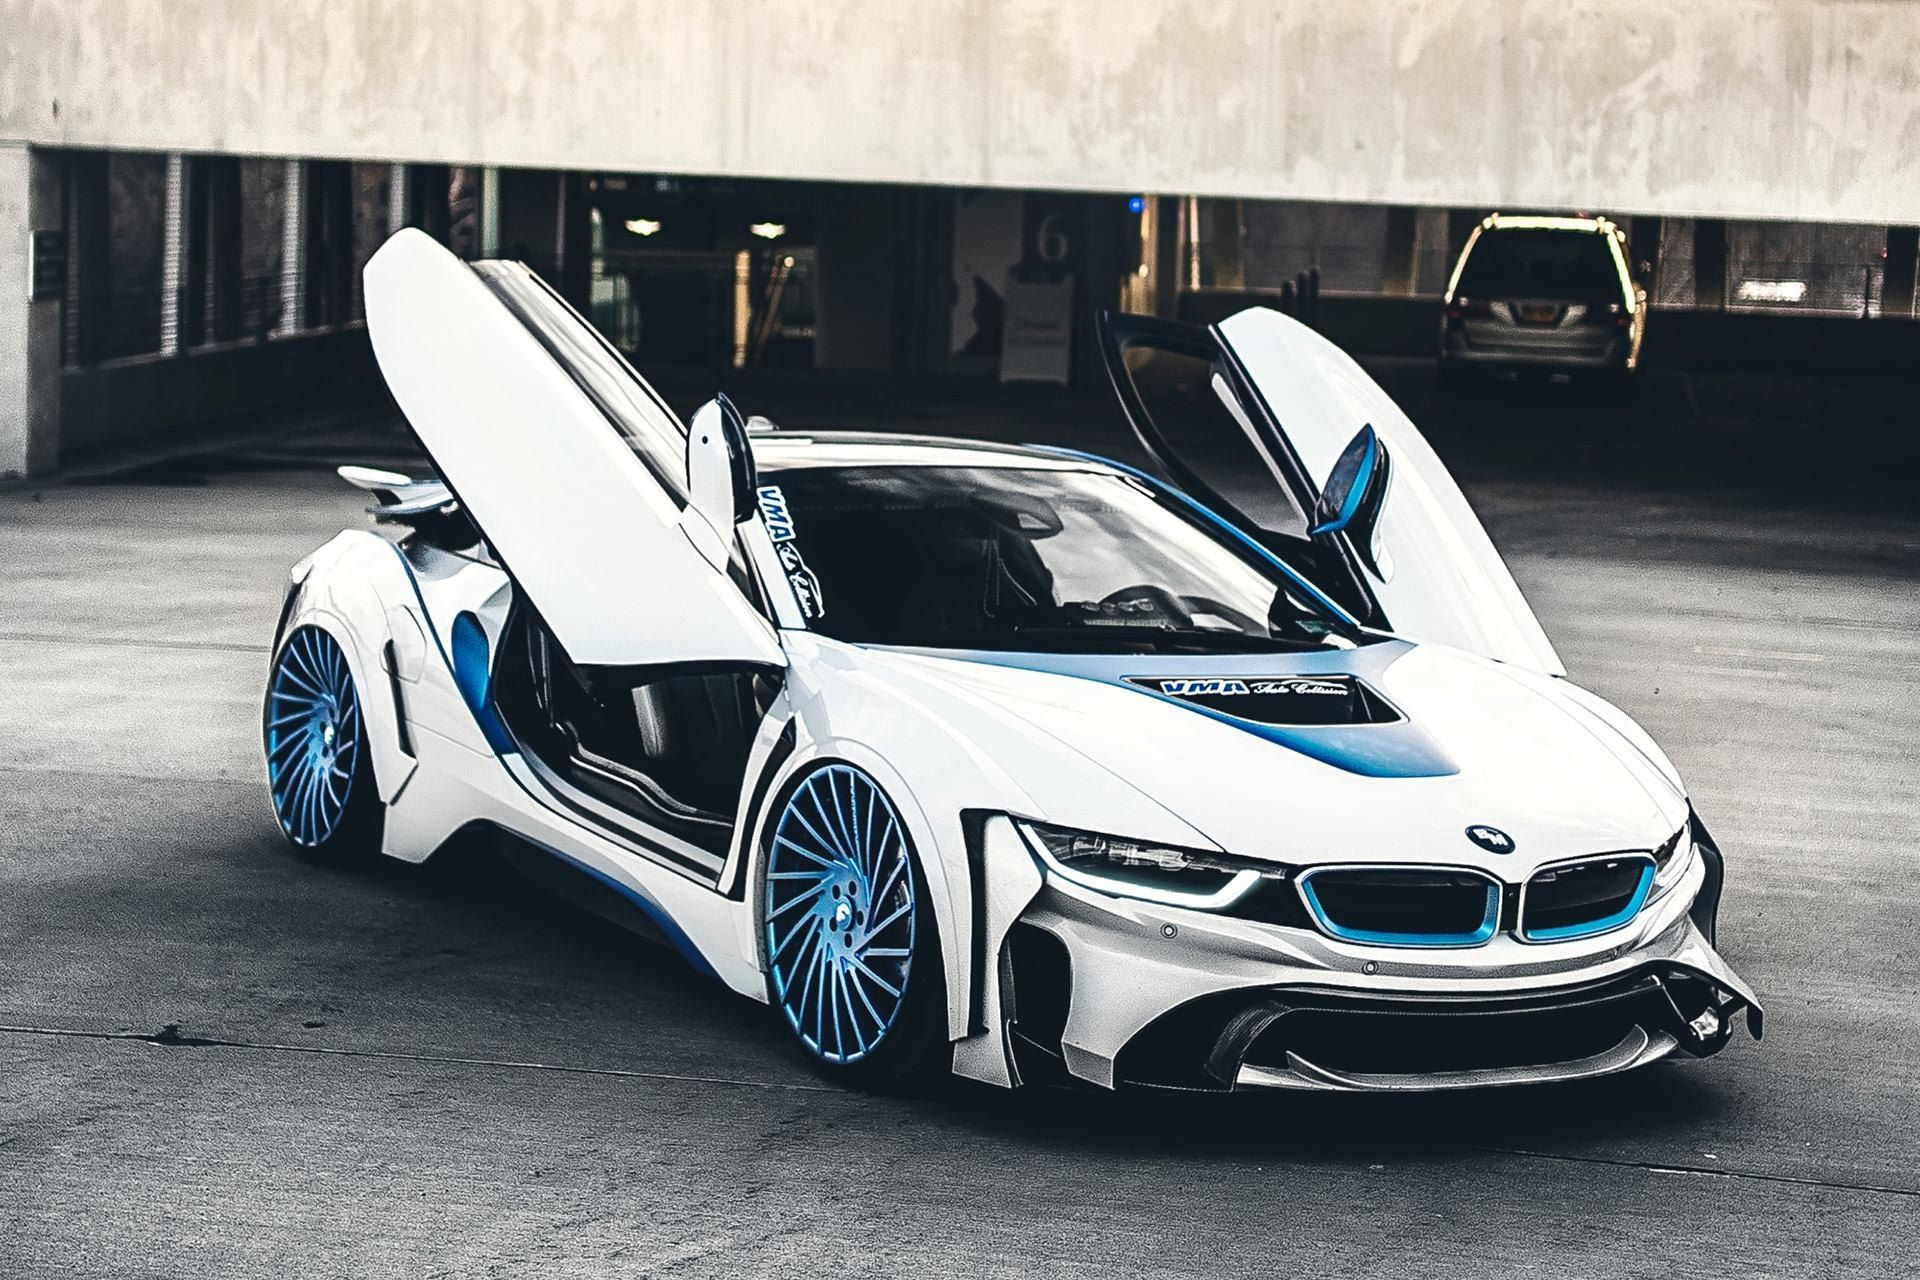 Spaceship In The Form Of The Car Custom White Bmw I8 With Blue Accents Carid Com Gallery In 2020 Bmw I8 Bmw Bmw White